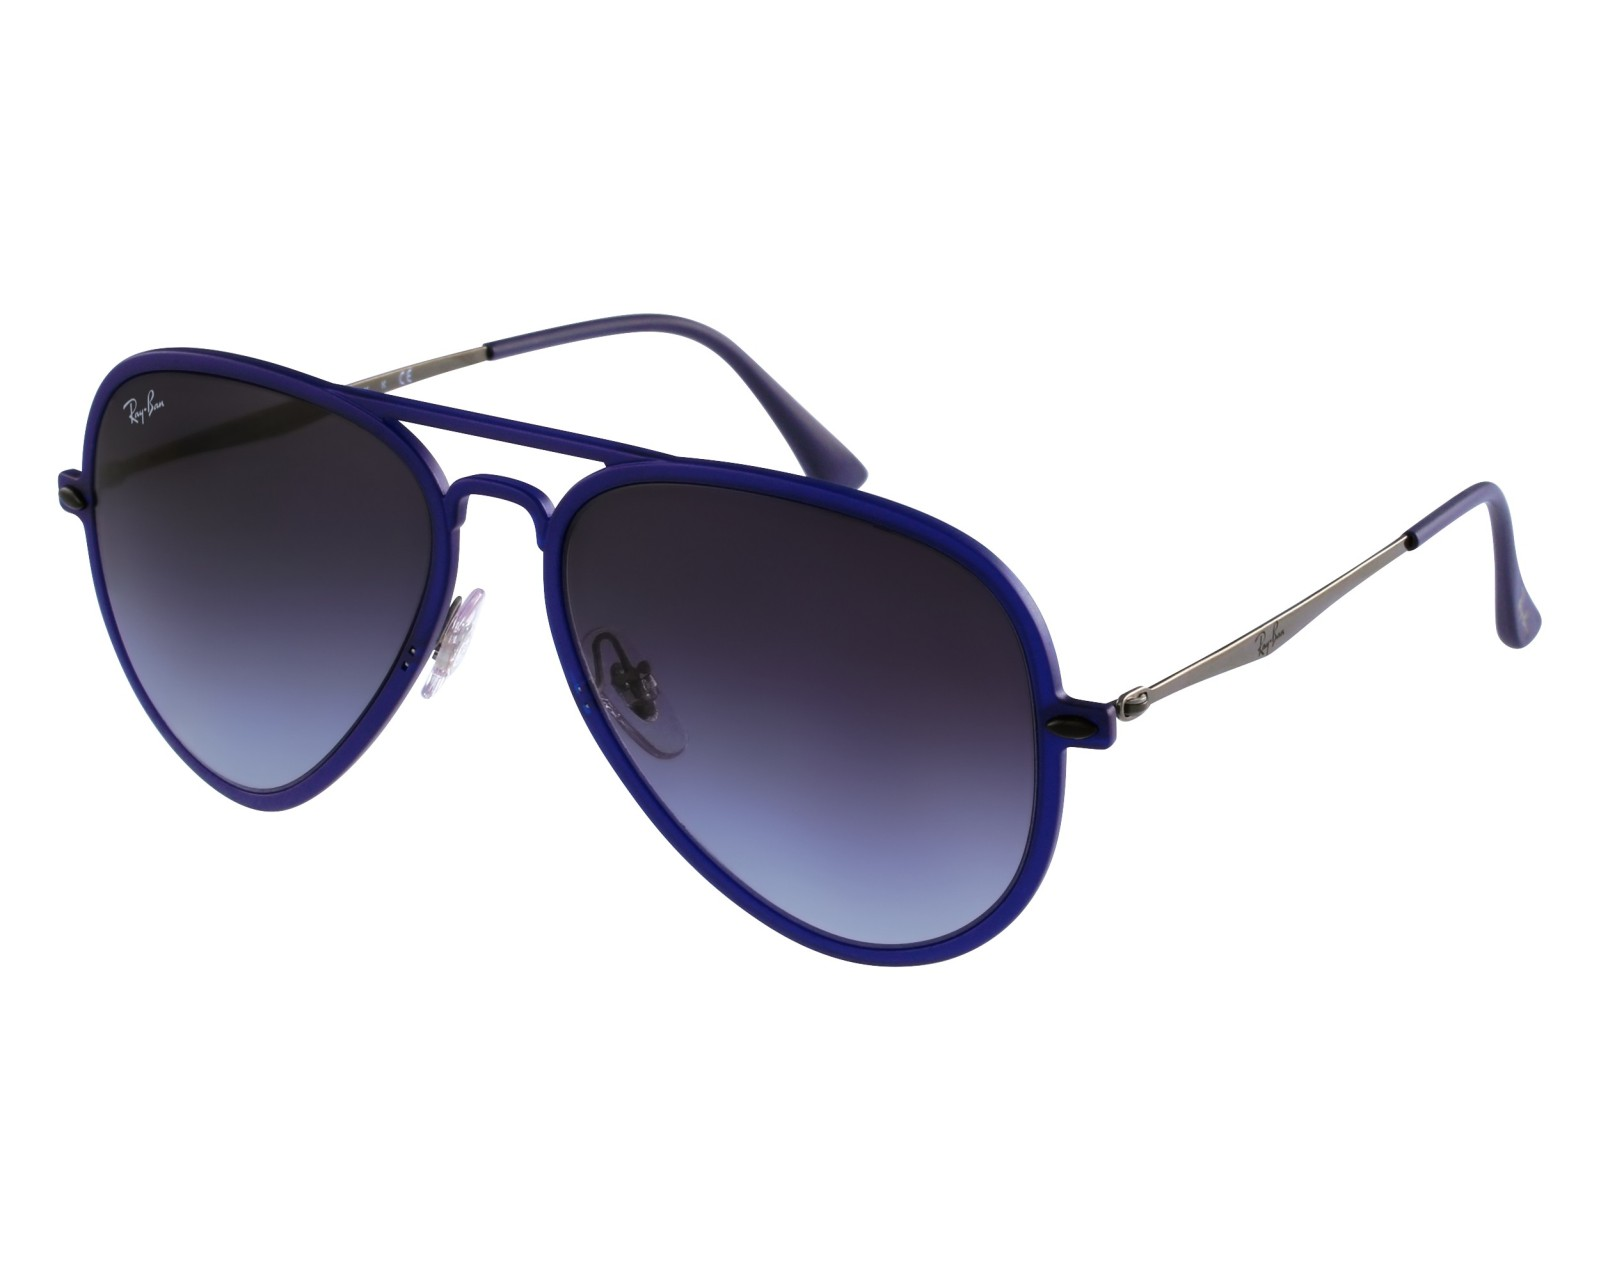 4442533cff thumbnail Sunglasses Ray-Ban RB-4211 895 8G - Blue Silver front view